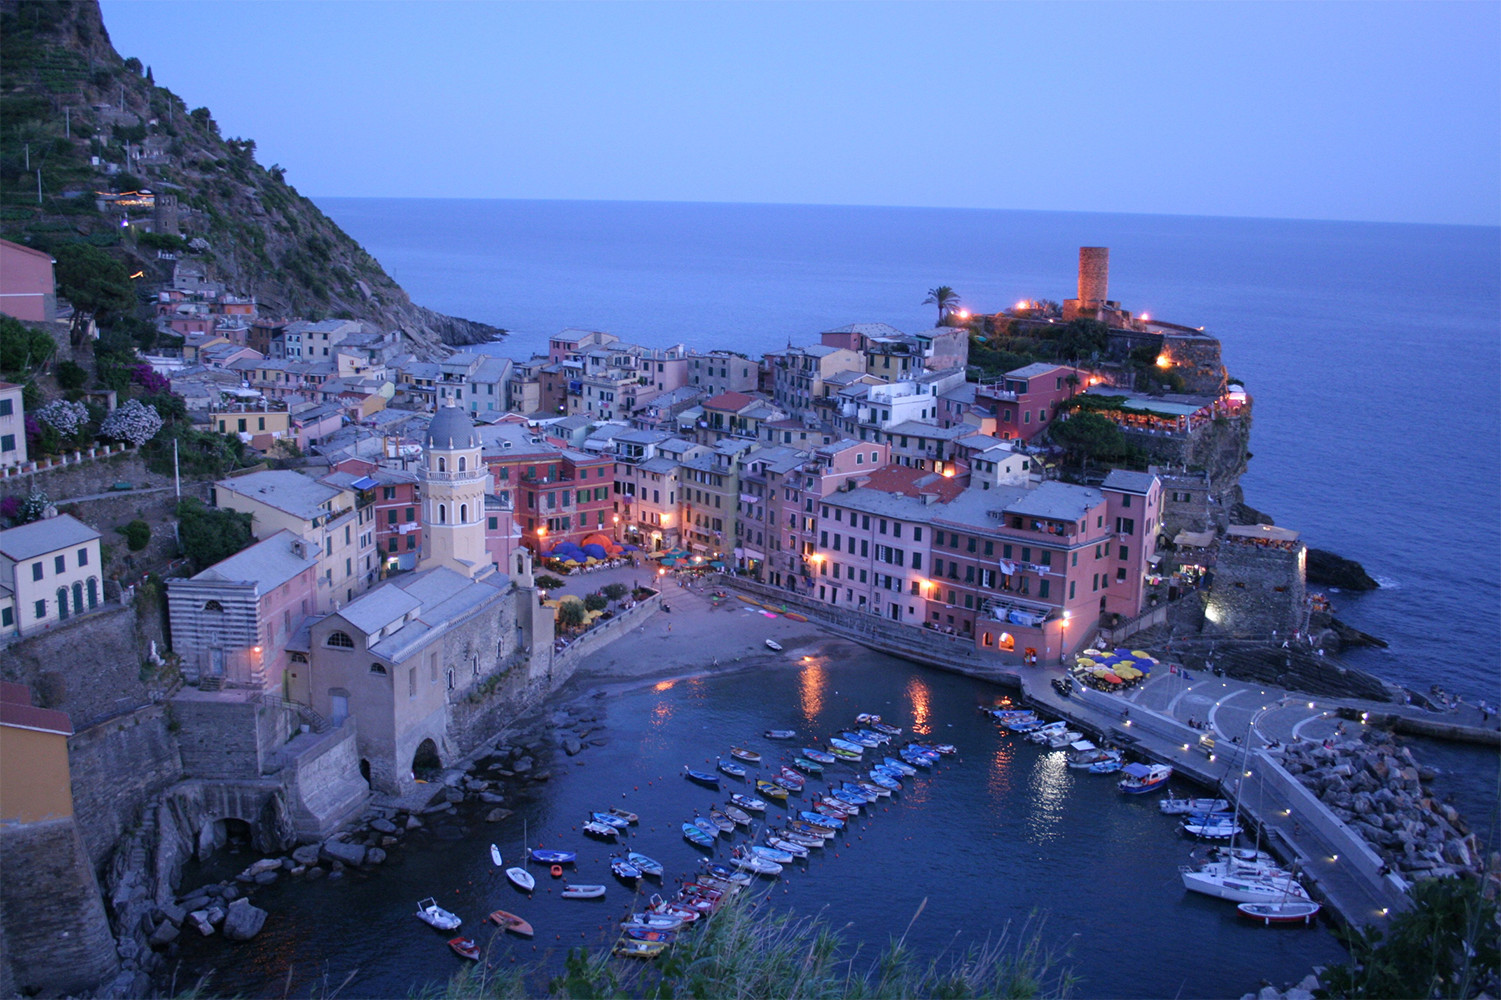 Vernazza,<br>photo by Michael Pasini, Parco Nazionale